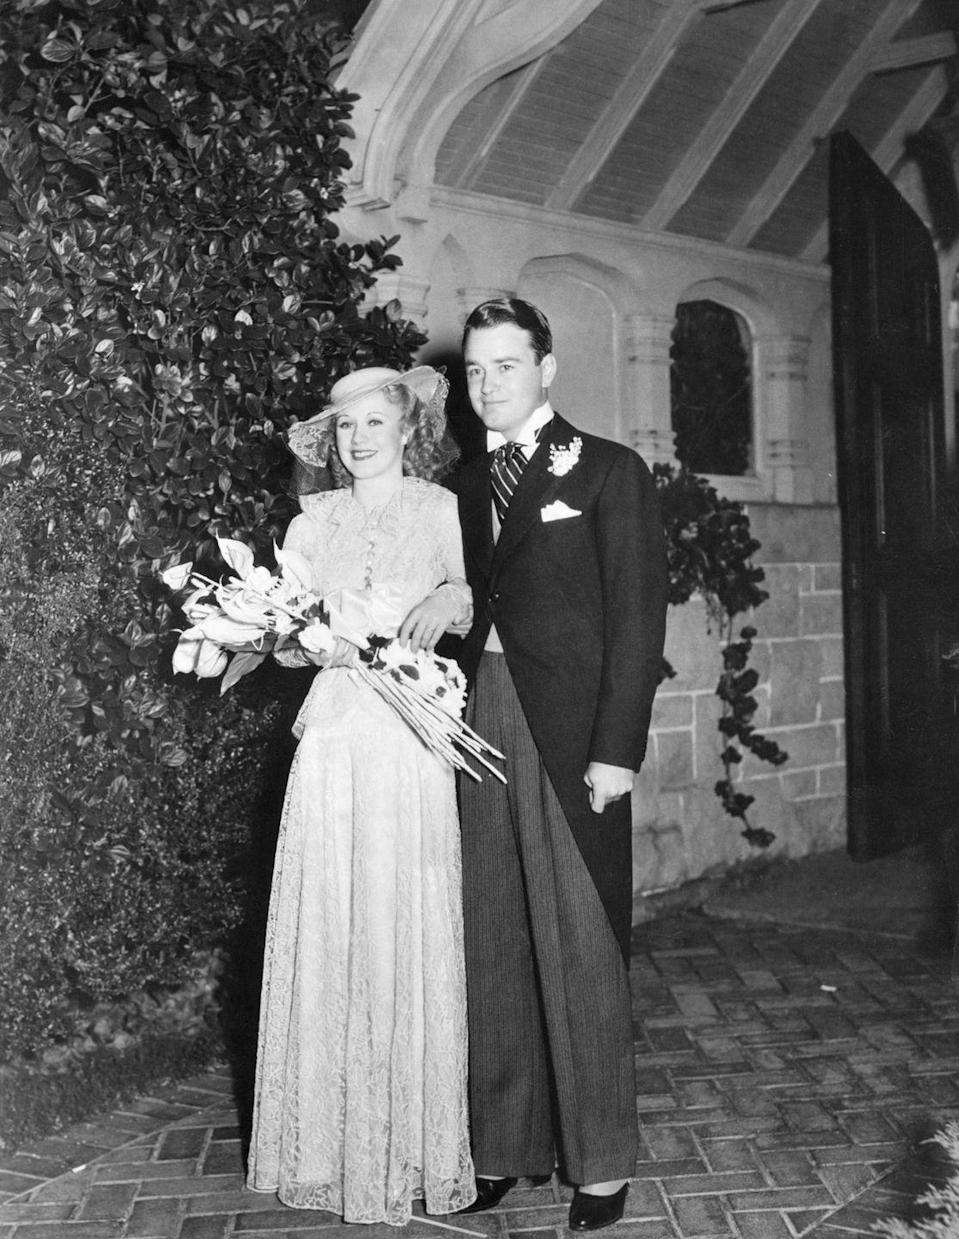 <p>After meeting on the set of <em>Don't Bet on Love </em>in 1933, Ginger Rogers and Lew Ayres married a year later in November 1934. The couple was married for six years, but divorced in 1940. </p>